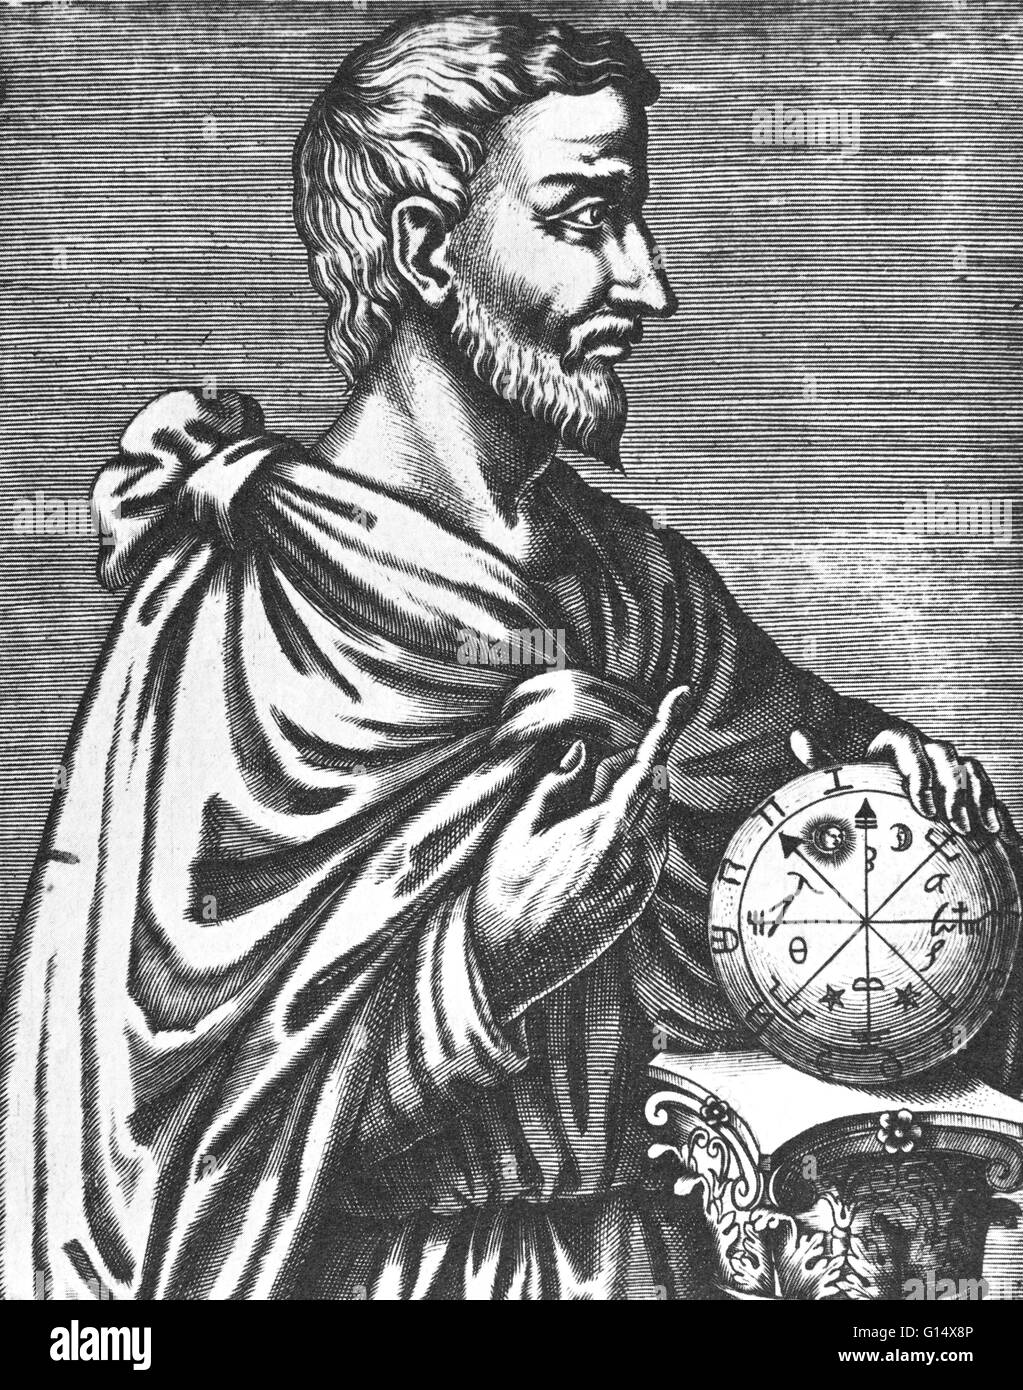 Pythagoras of Samos (570 - 495 BC) was an Ancient Greek philosopher, mathematician, and founder of the religious - Stock Image